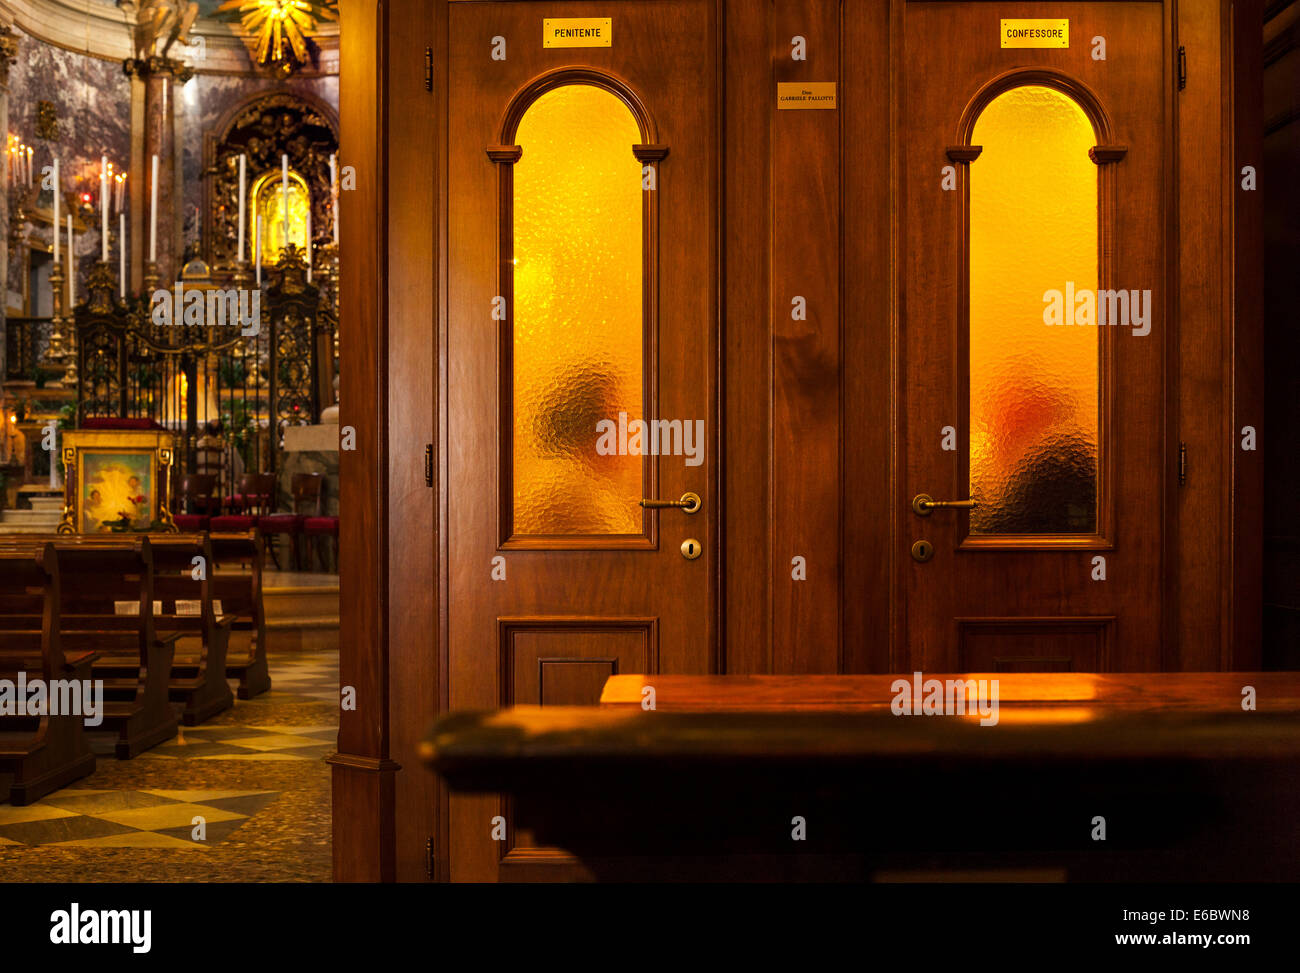 Priest hearing confession in confessional box booth in Roman Catholic Church Sanctuary of the Madonna di San Luca - Stock Image